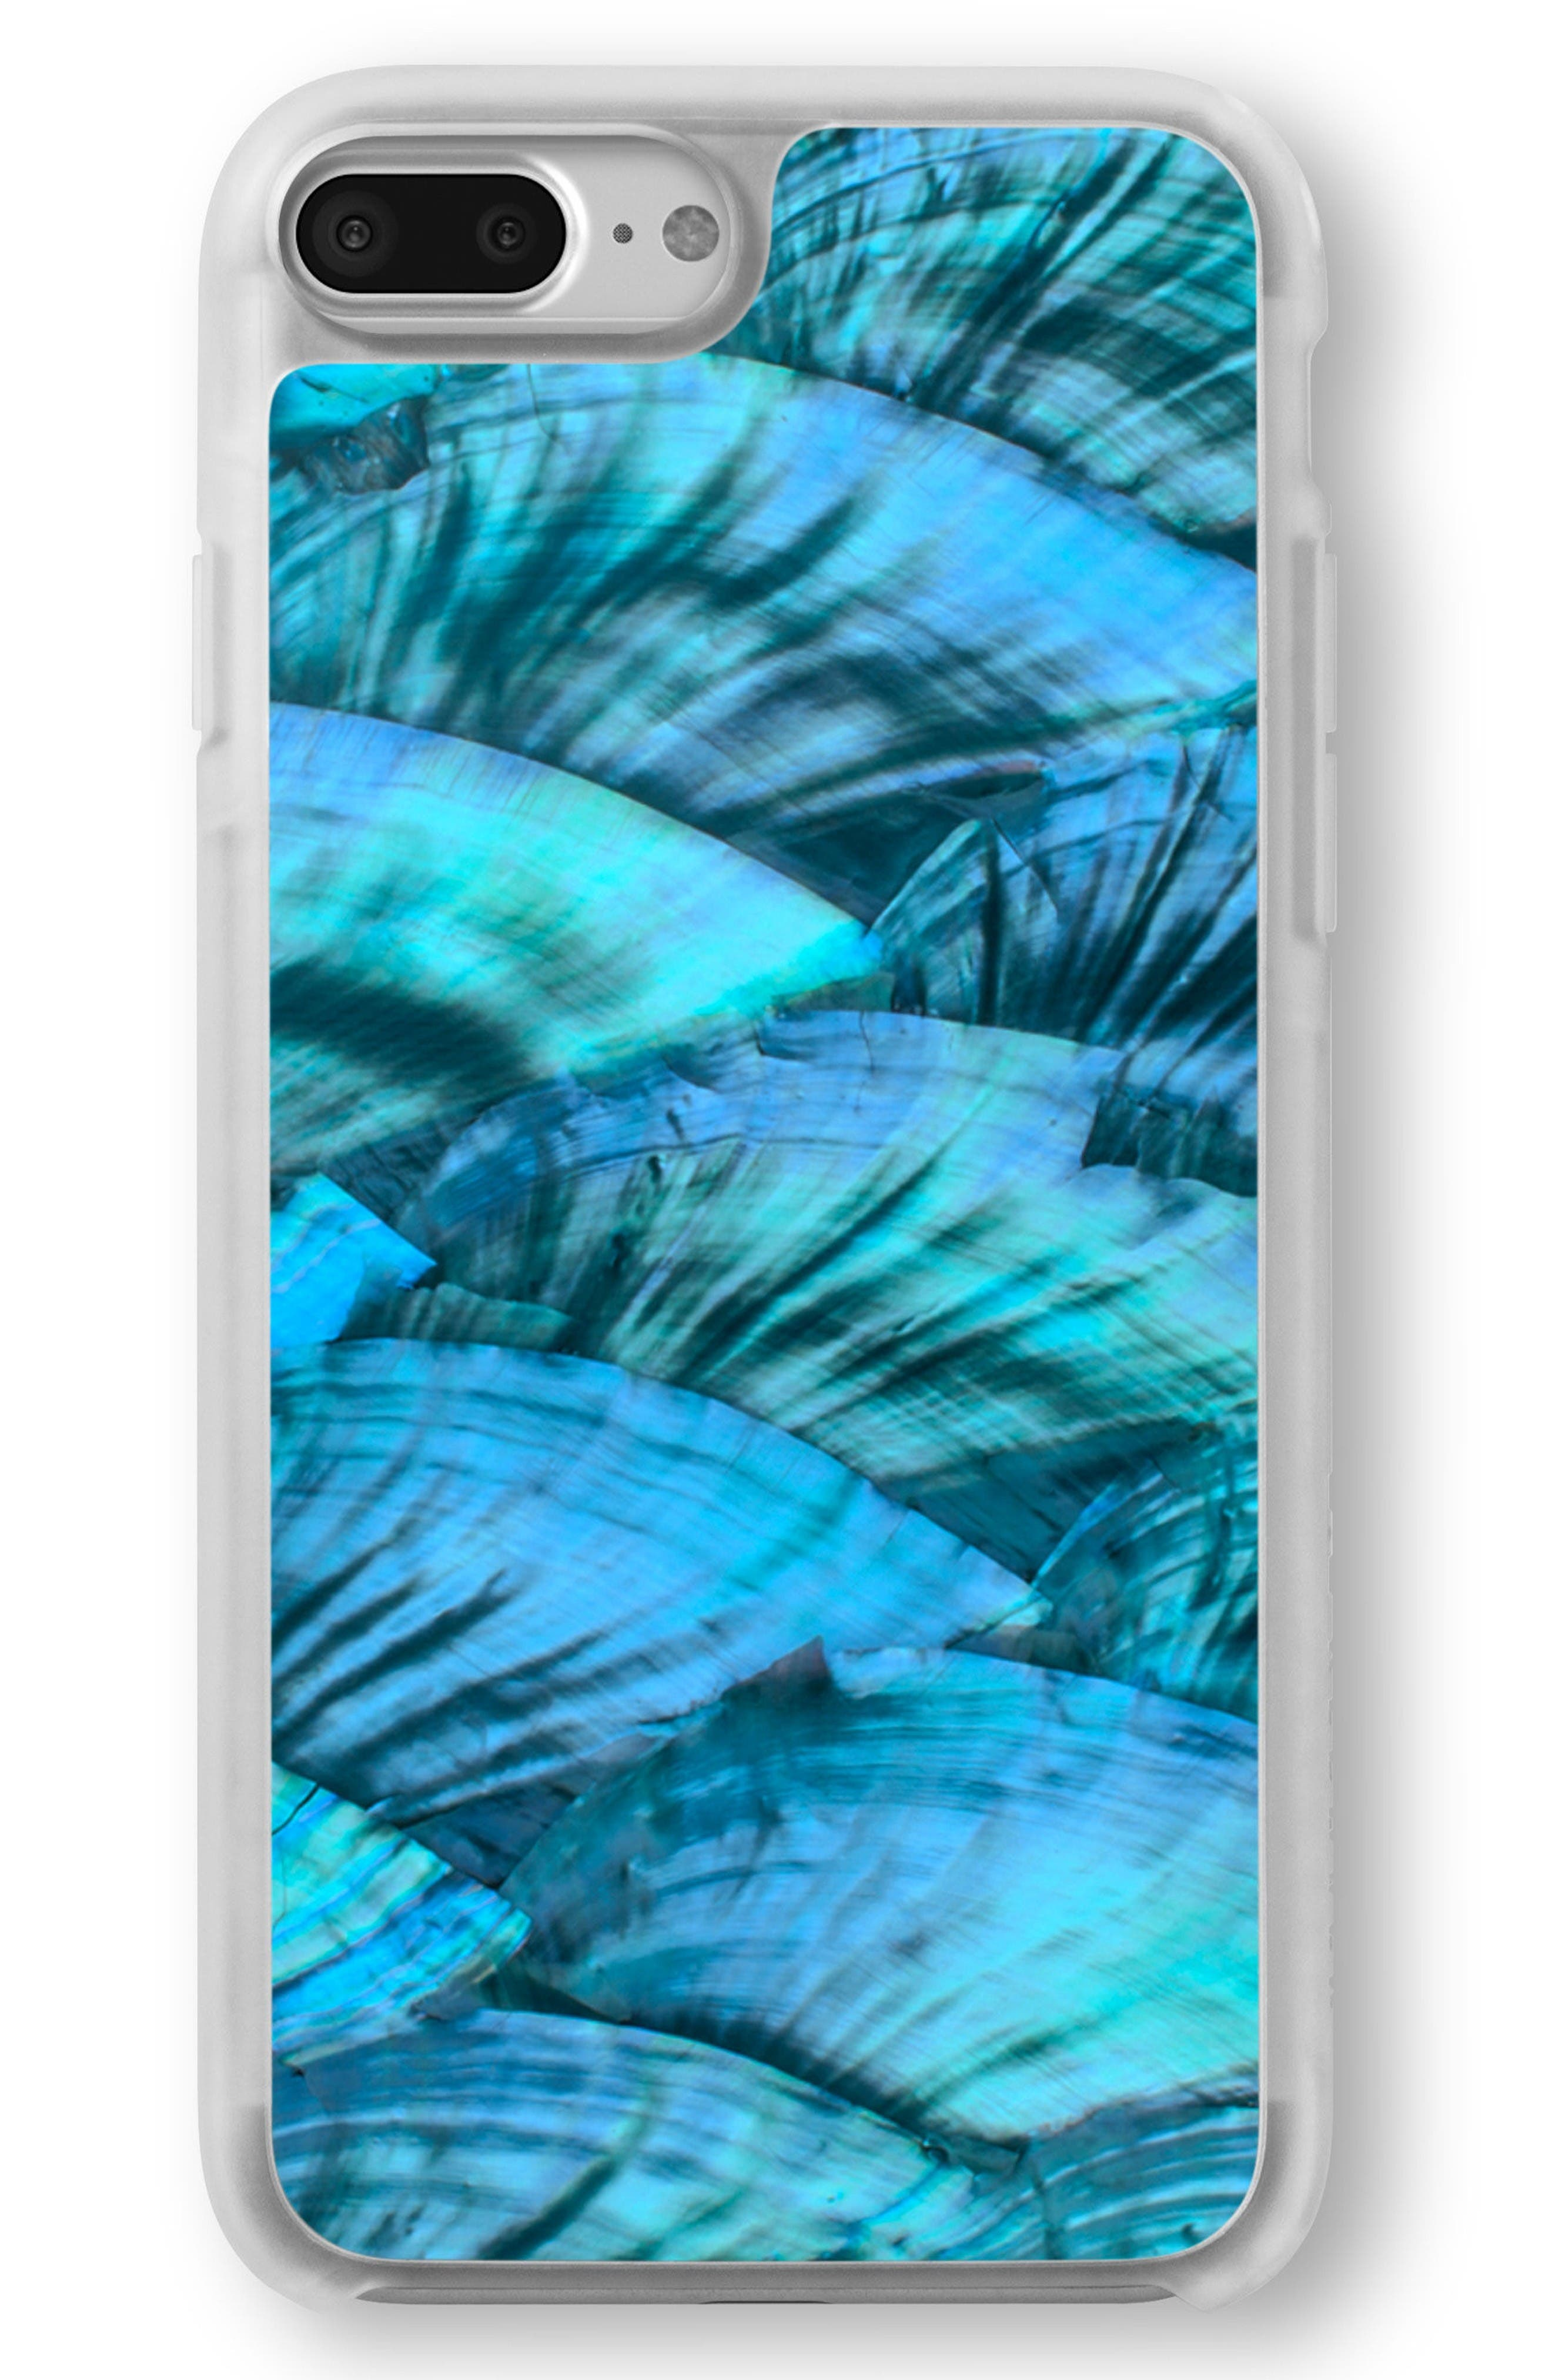 Main Image - Recover Blue Abalone iPhone 6/6s/7/8 & 6/6s/7/8 Plus Case